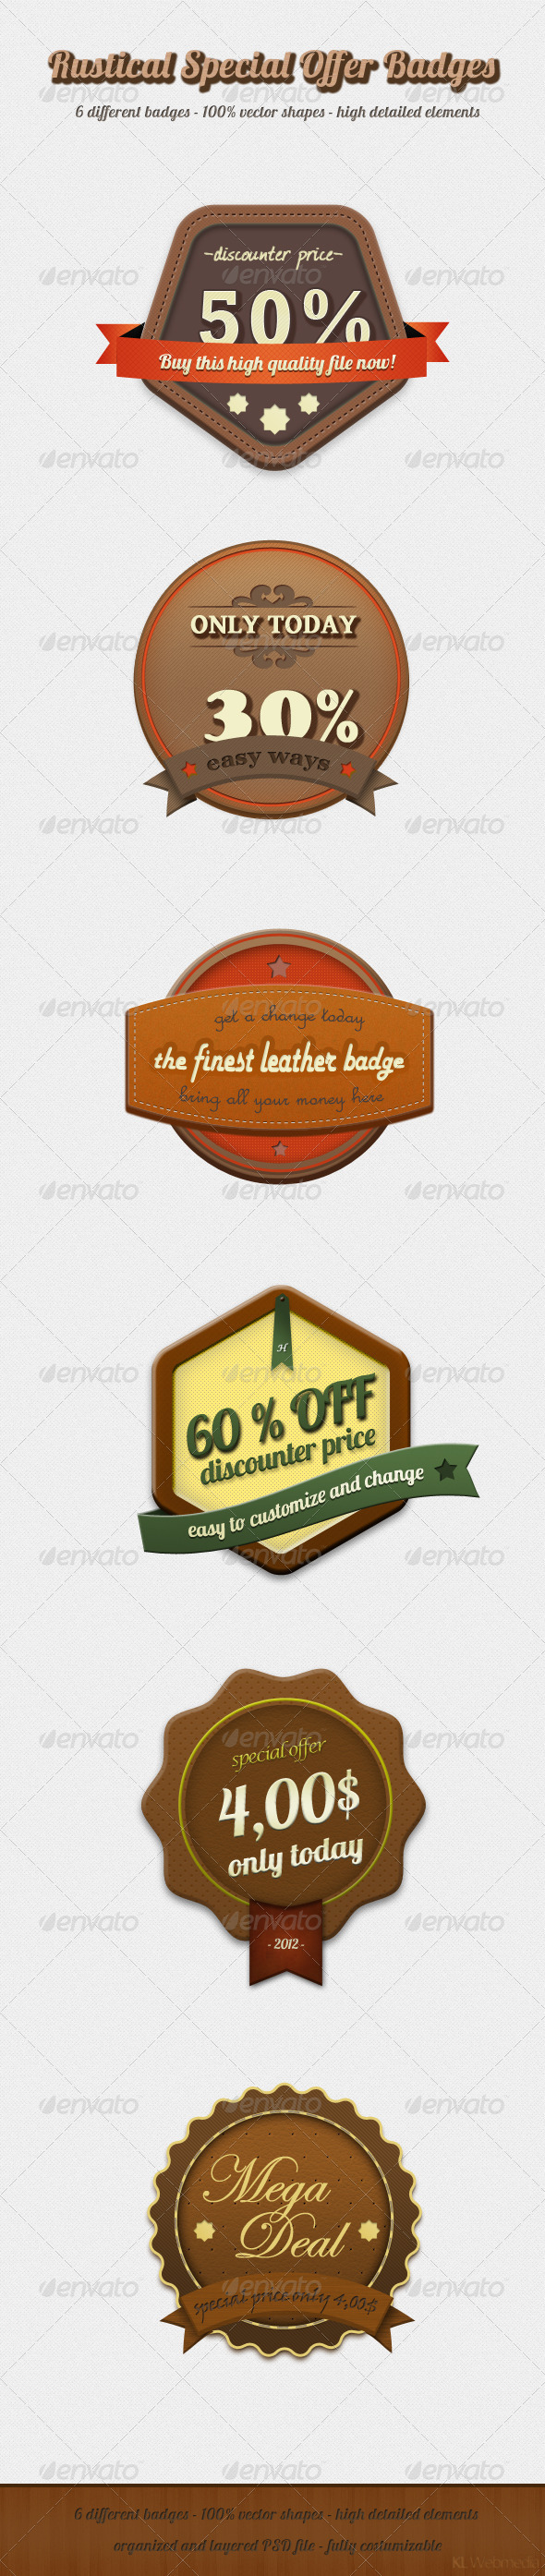 Rustical Special Offer Badges - Badges & Stickers Web Elements